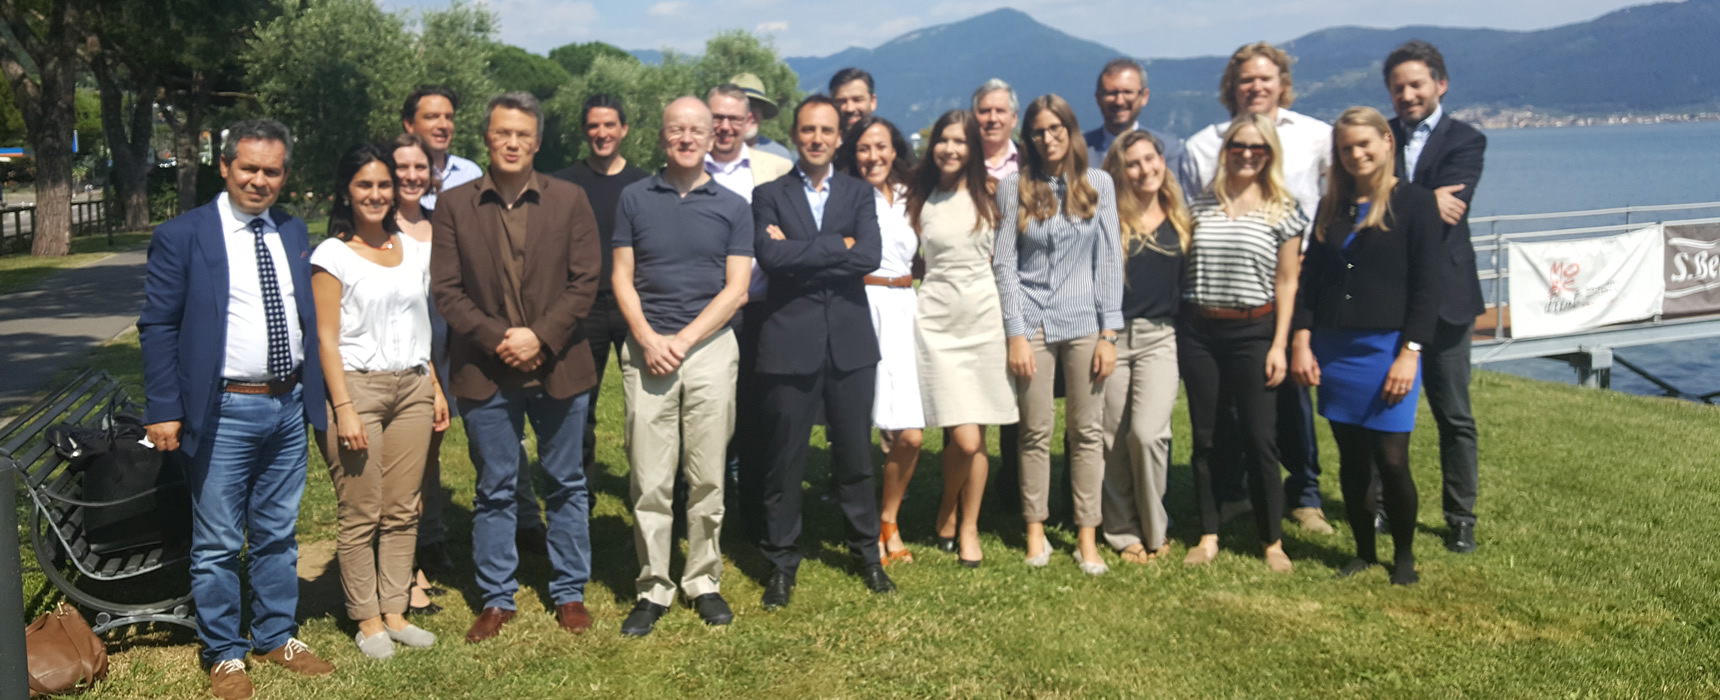 Extradition seminar - Lake Iseo 2018